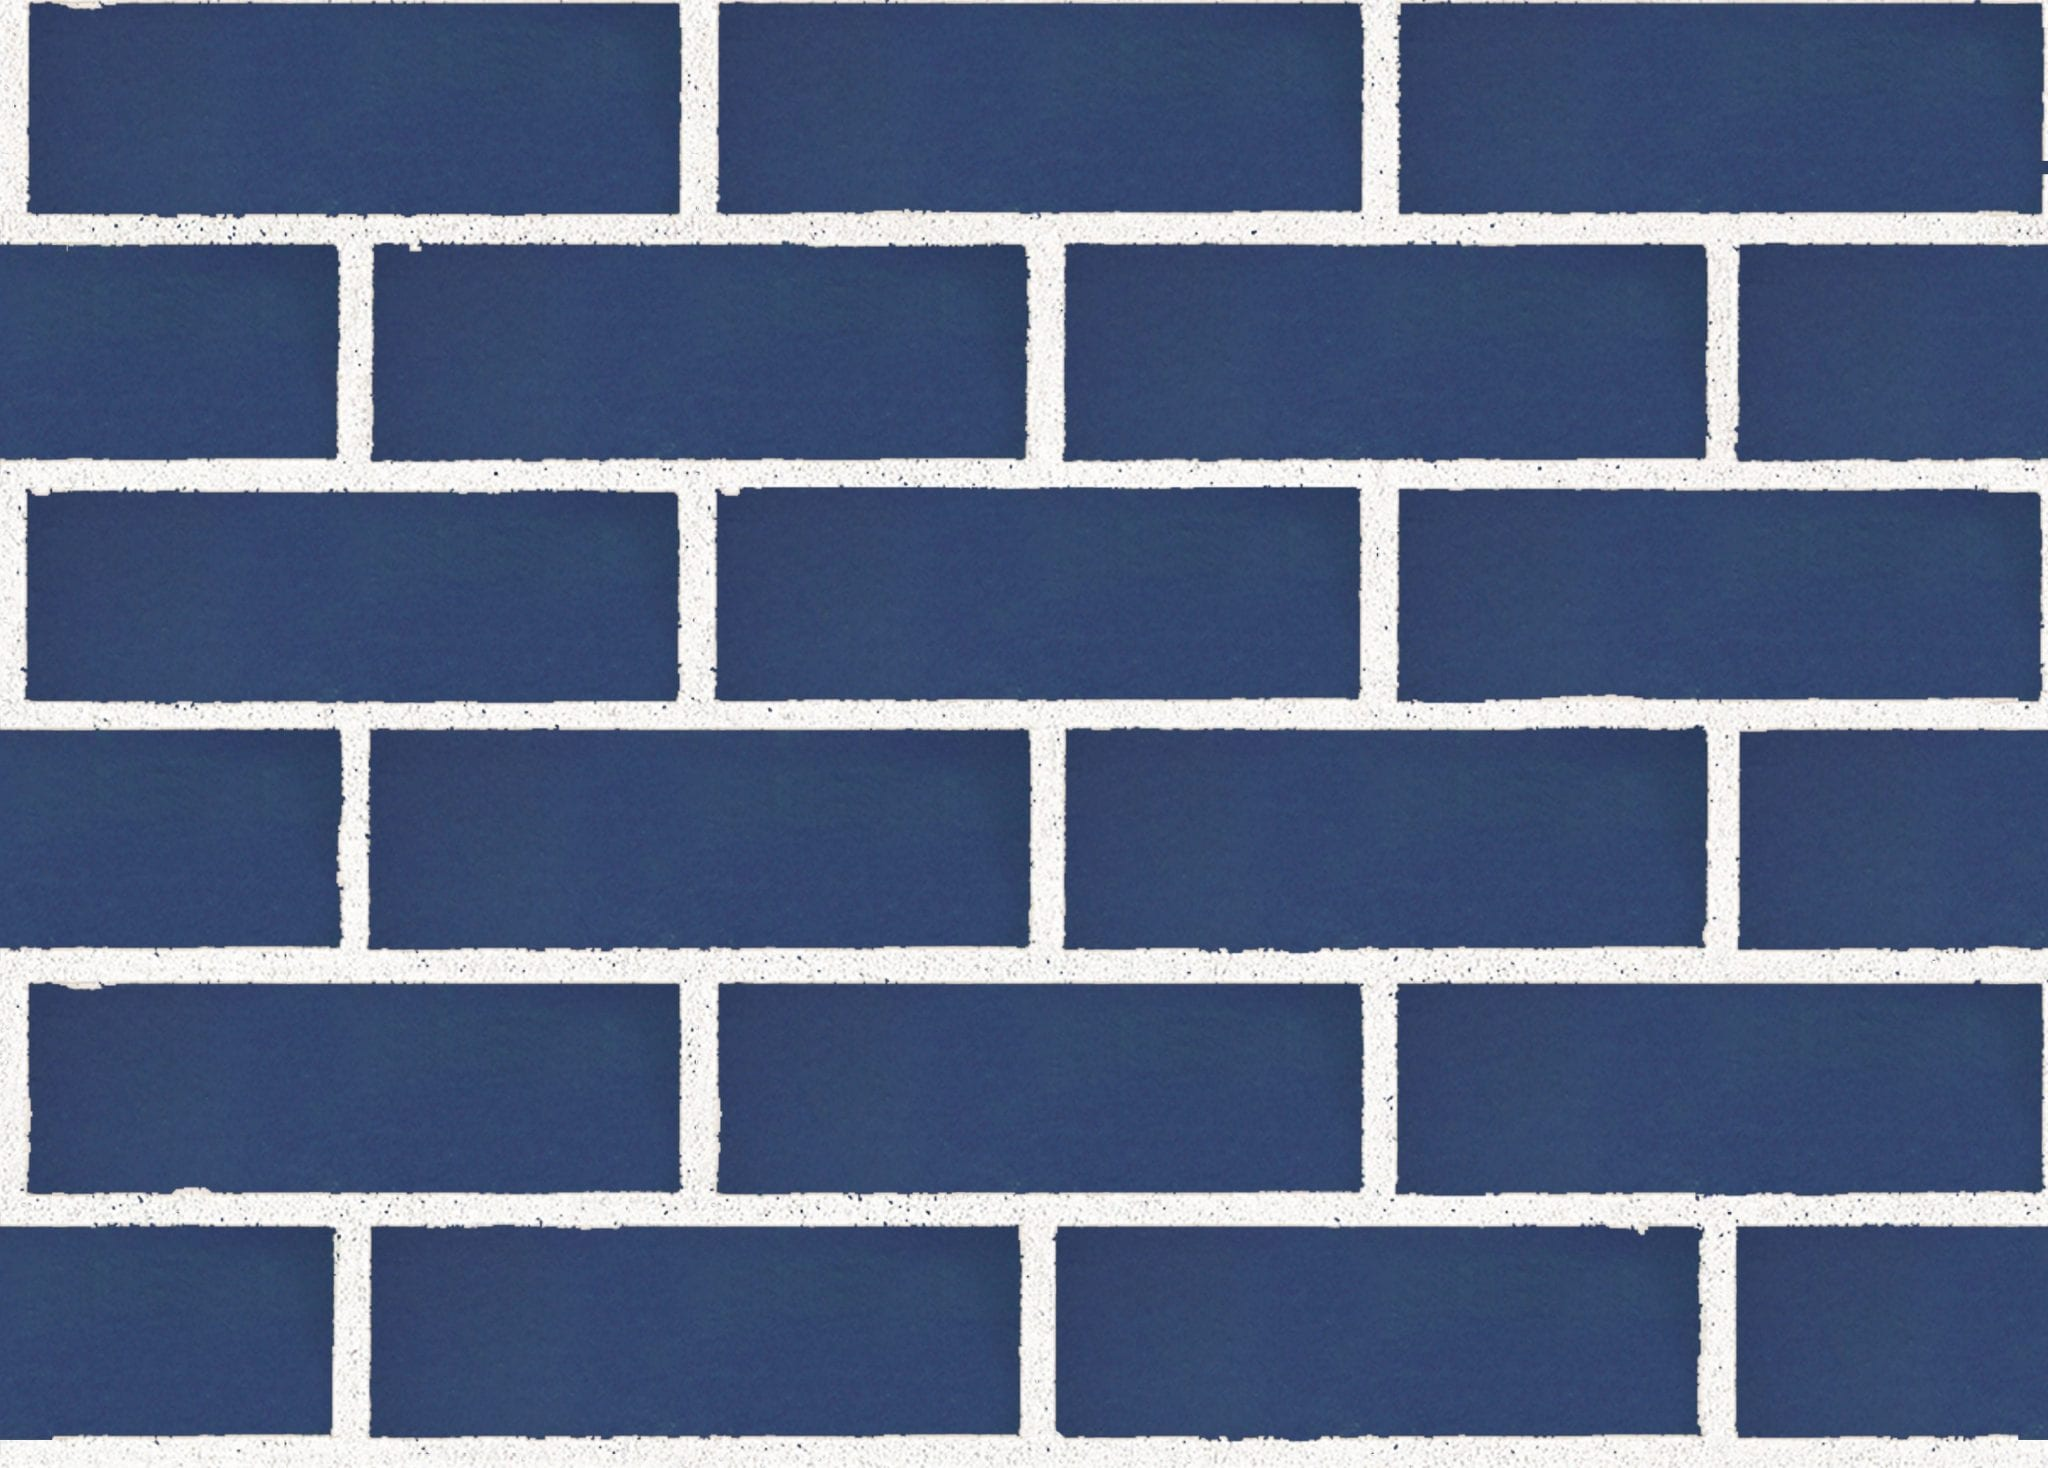 BurlesqueSmashingBlue230x76-110-240 - NSW Bricks